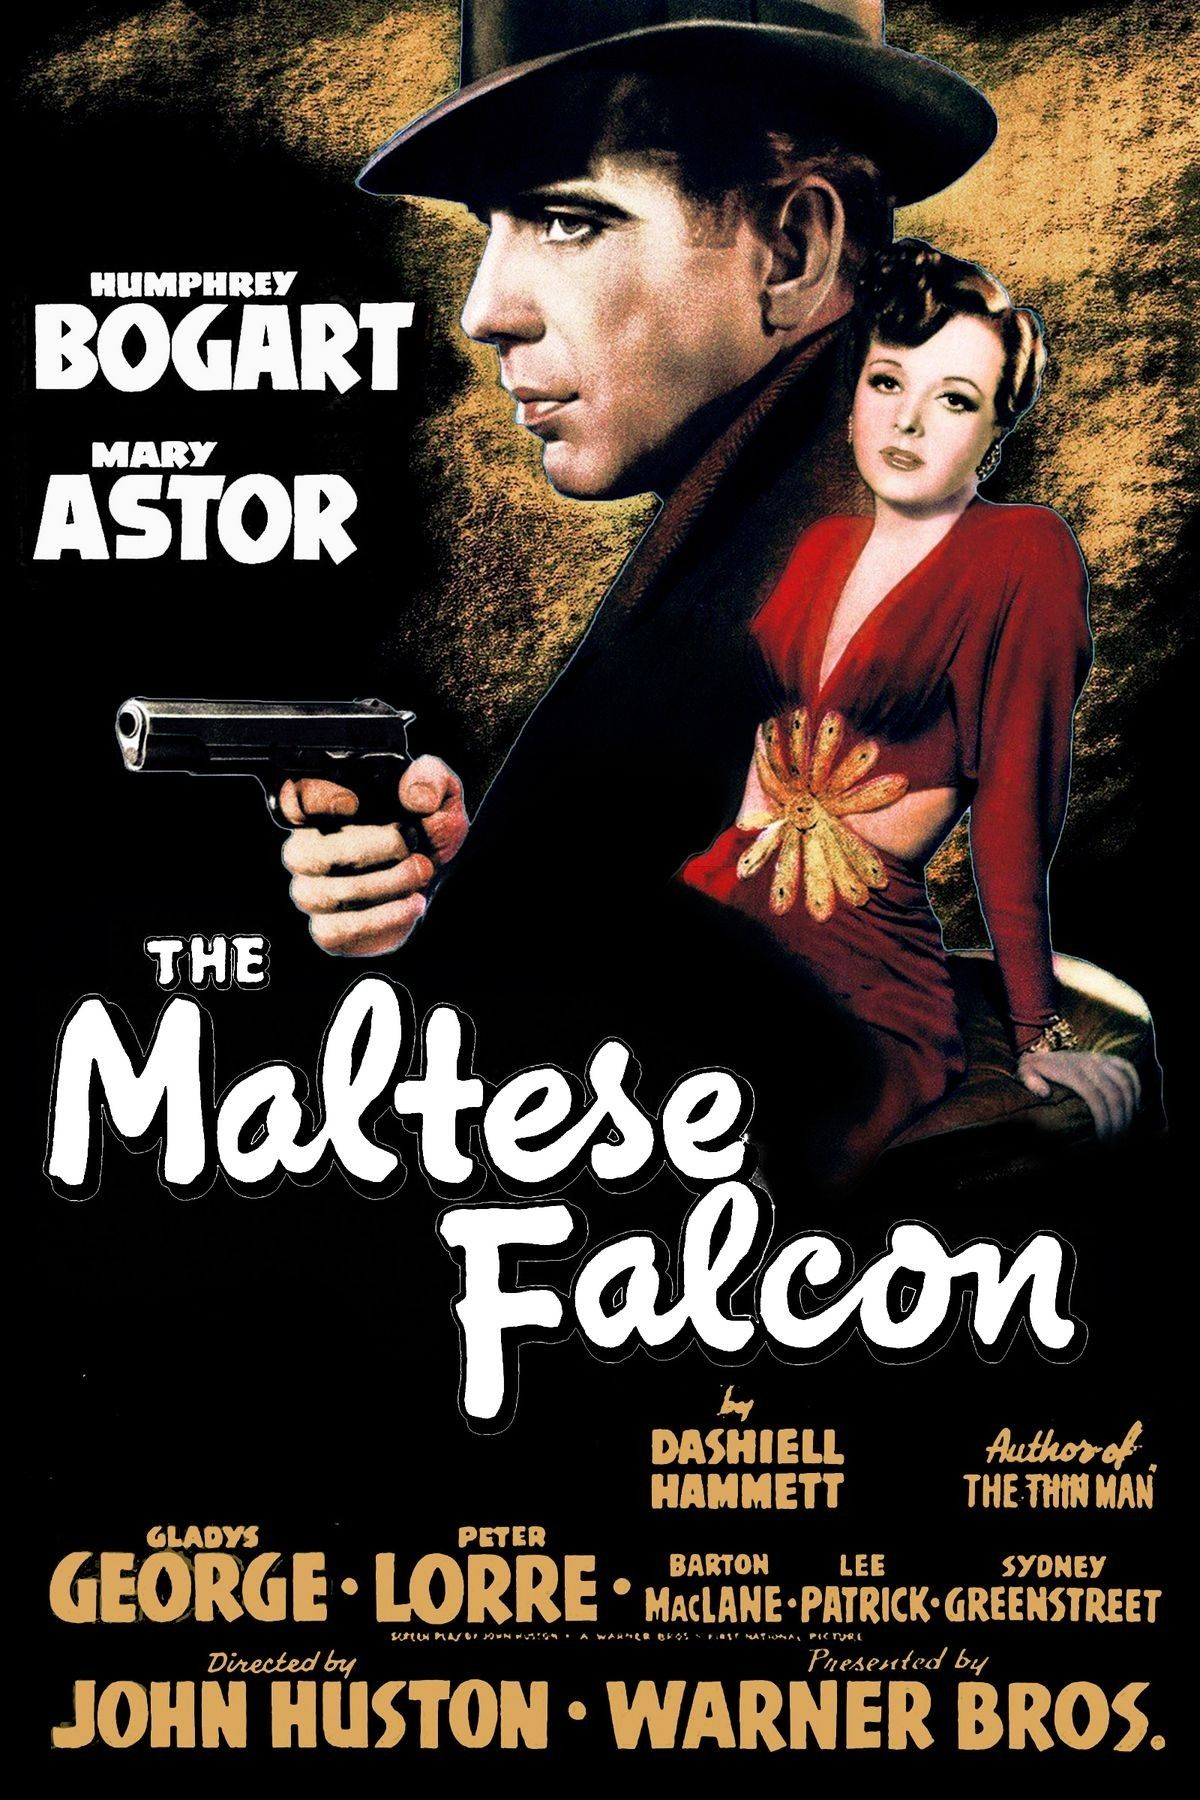 Pin By Joseph Moore On Movie Posters Bogart Movies Humphrey Bogart Maltese Falcon Movie